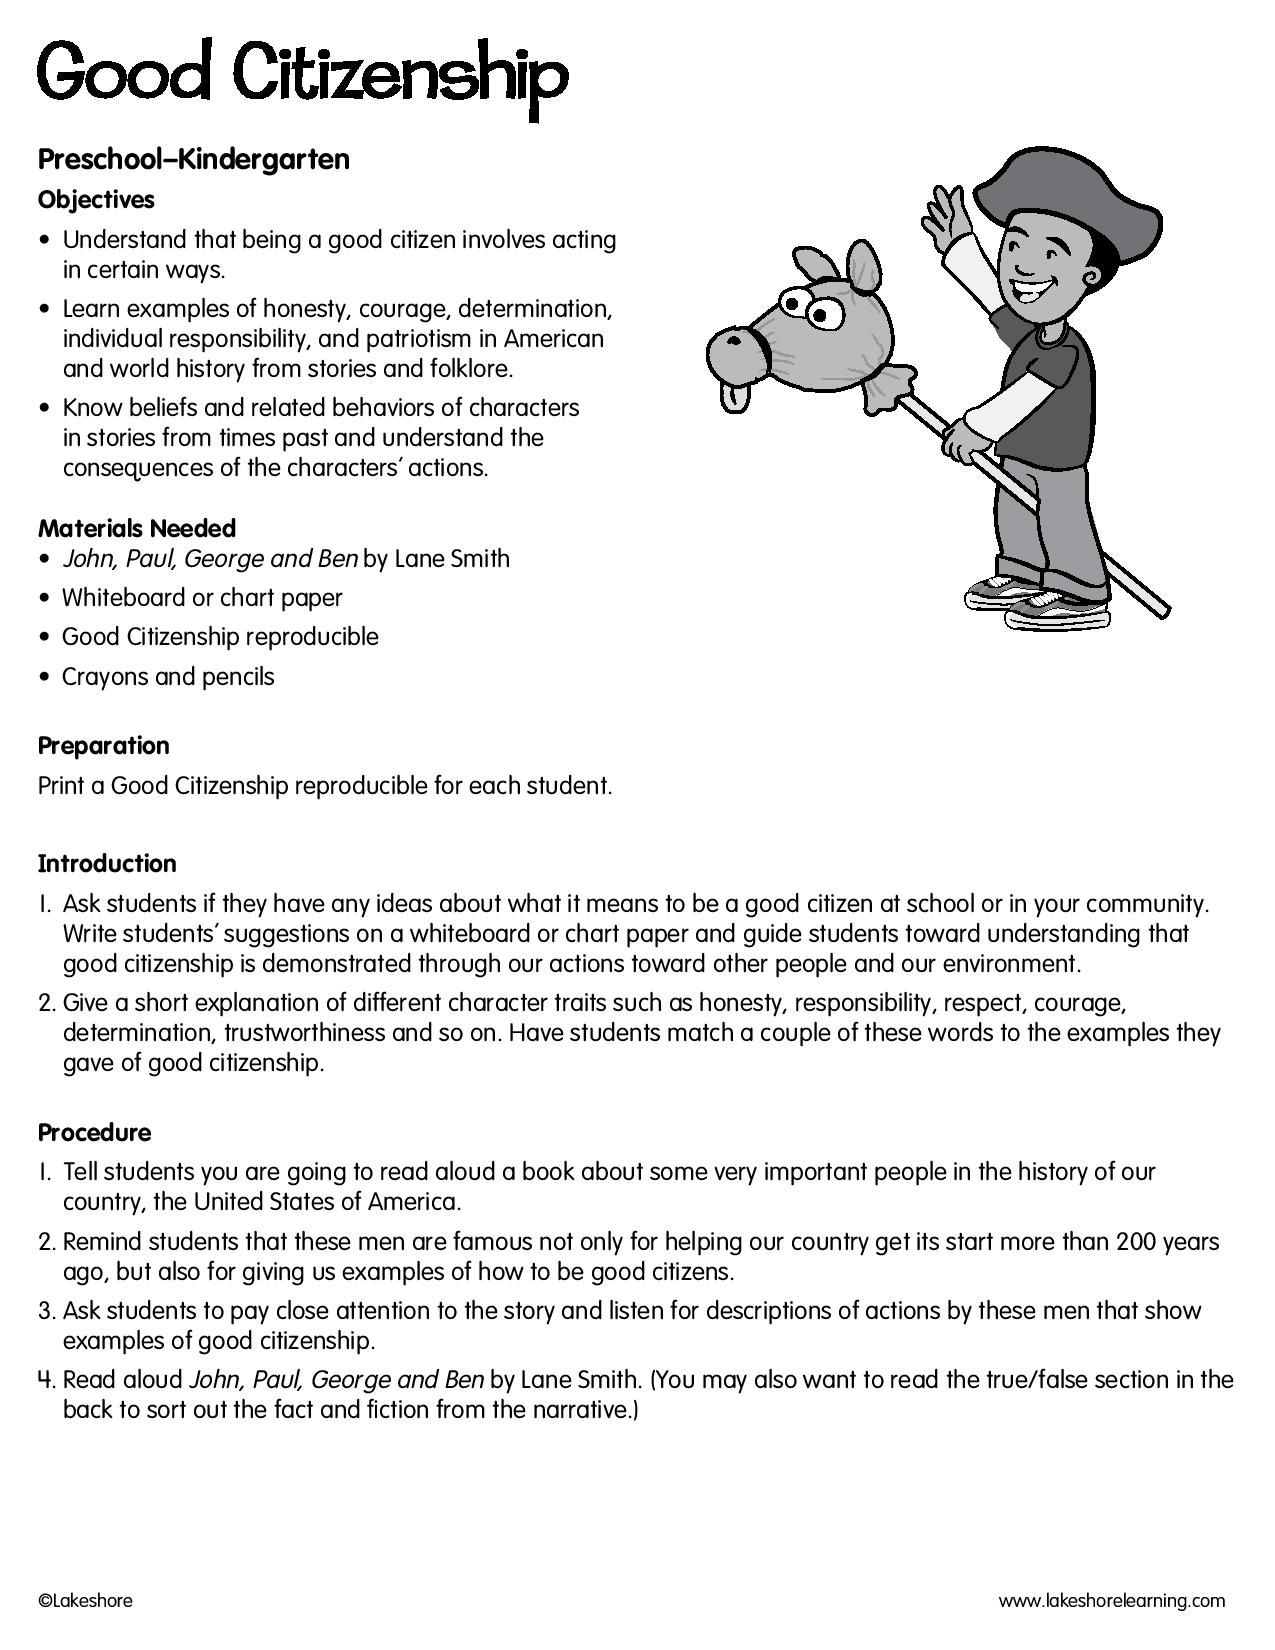 Good Citizenship Lessonplan Lesson Plans Free Lesson